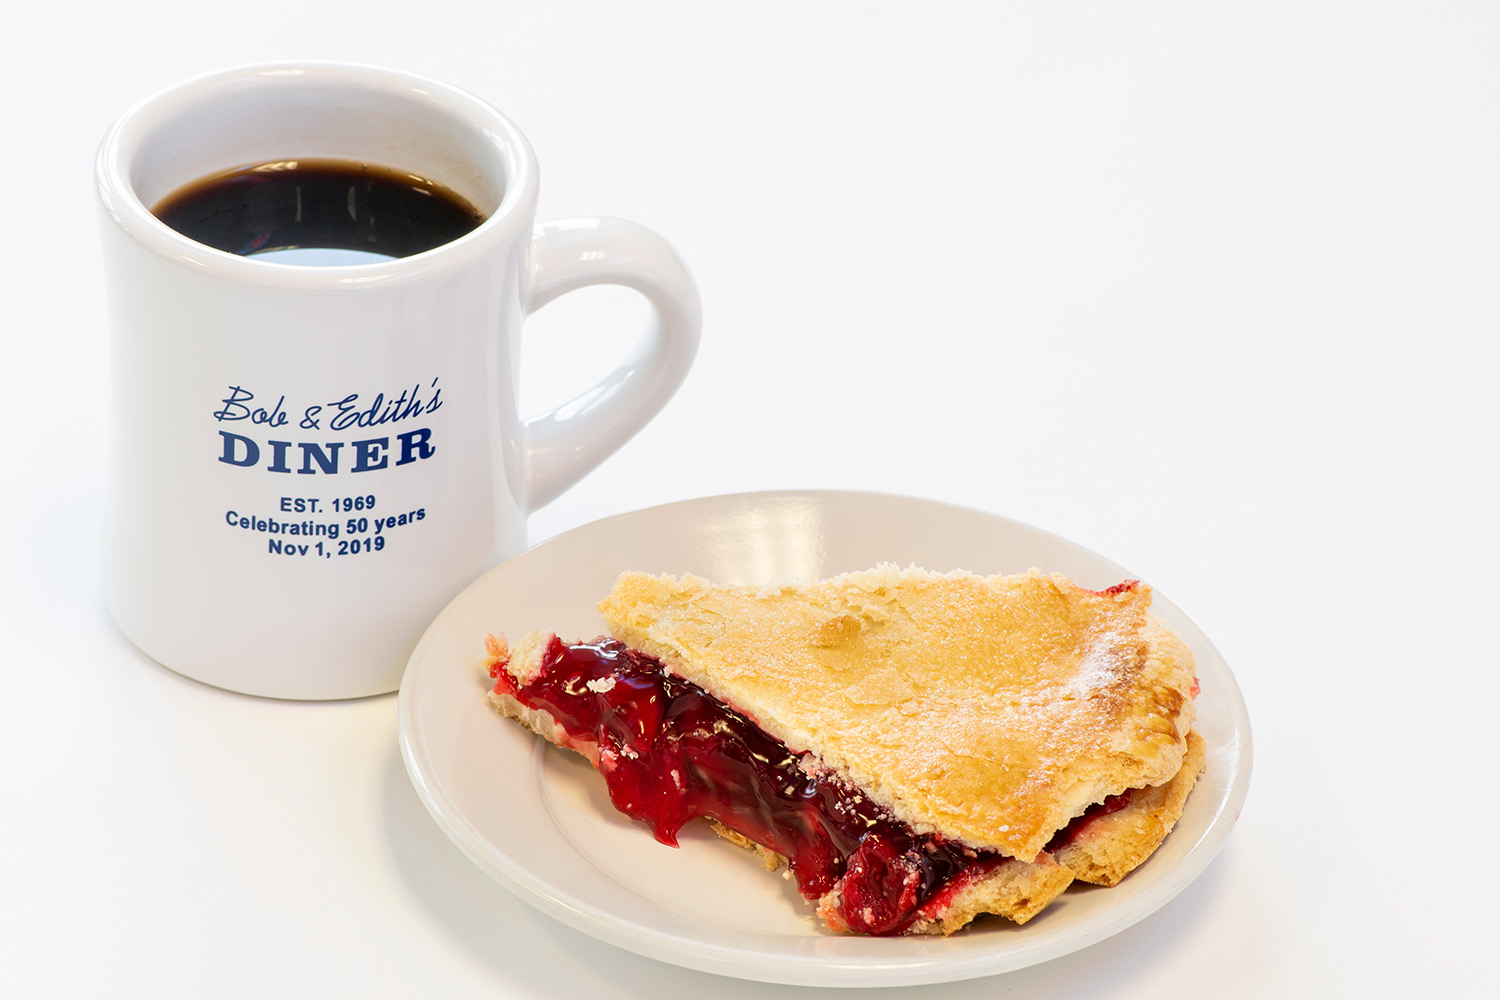 Cherry Pie and coffe